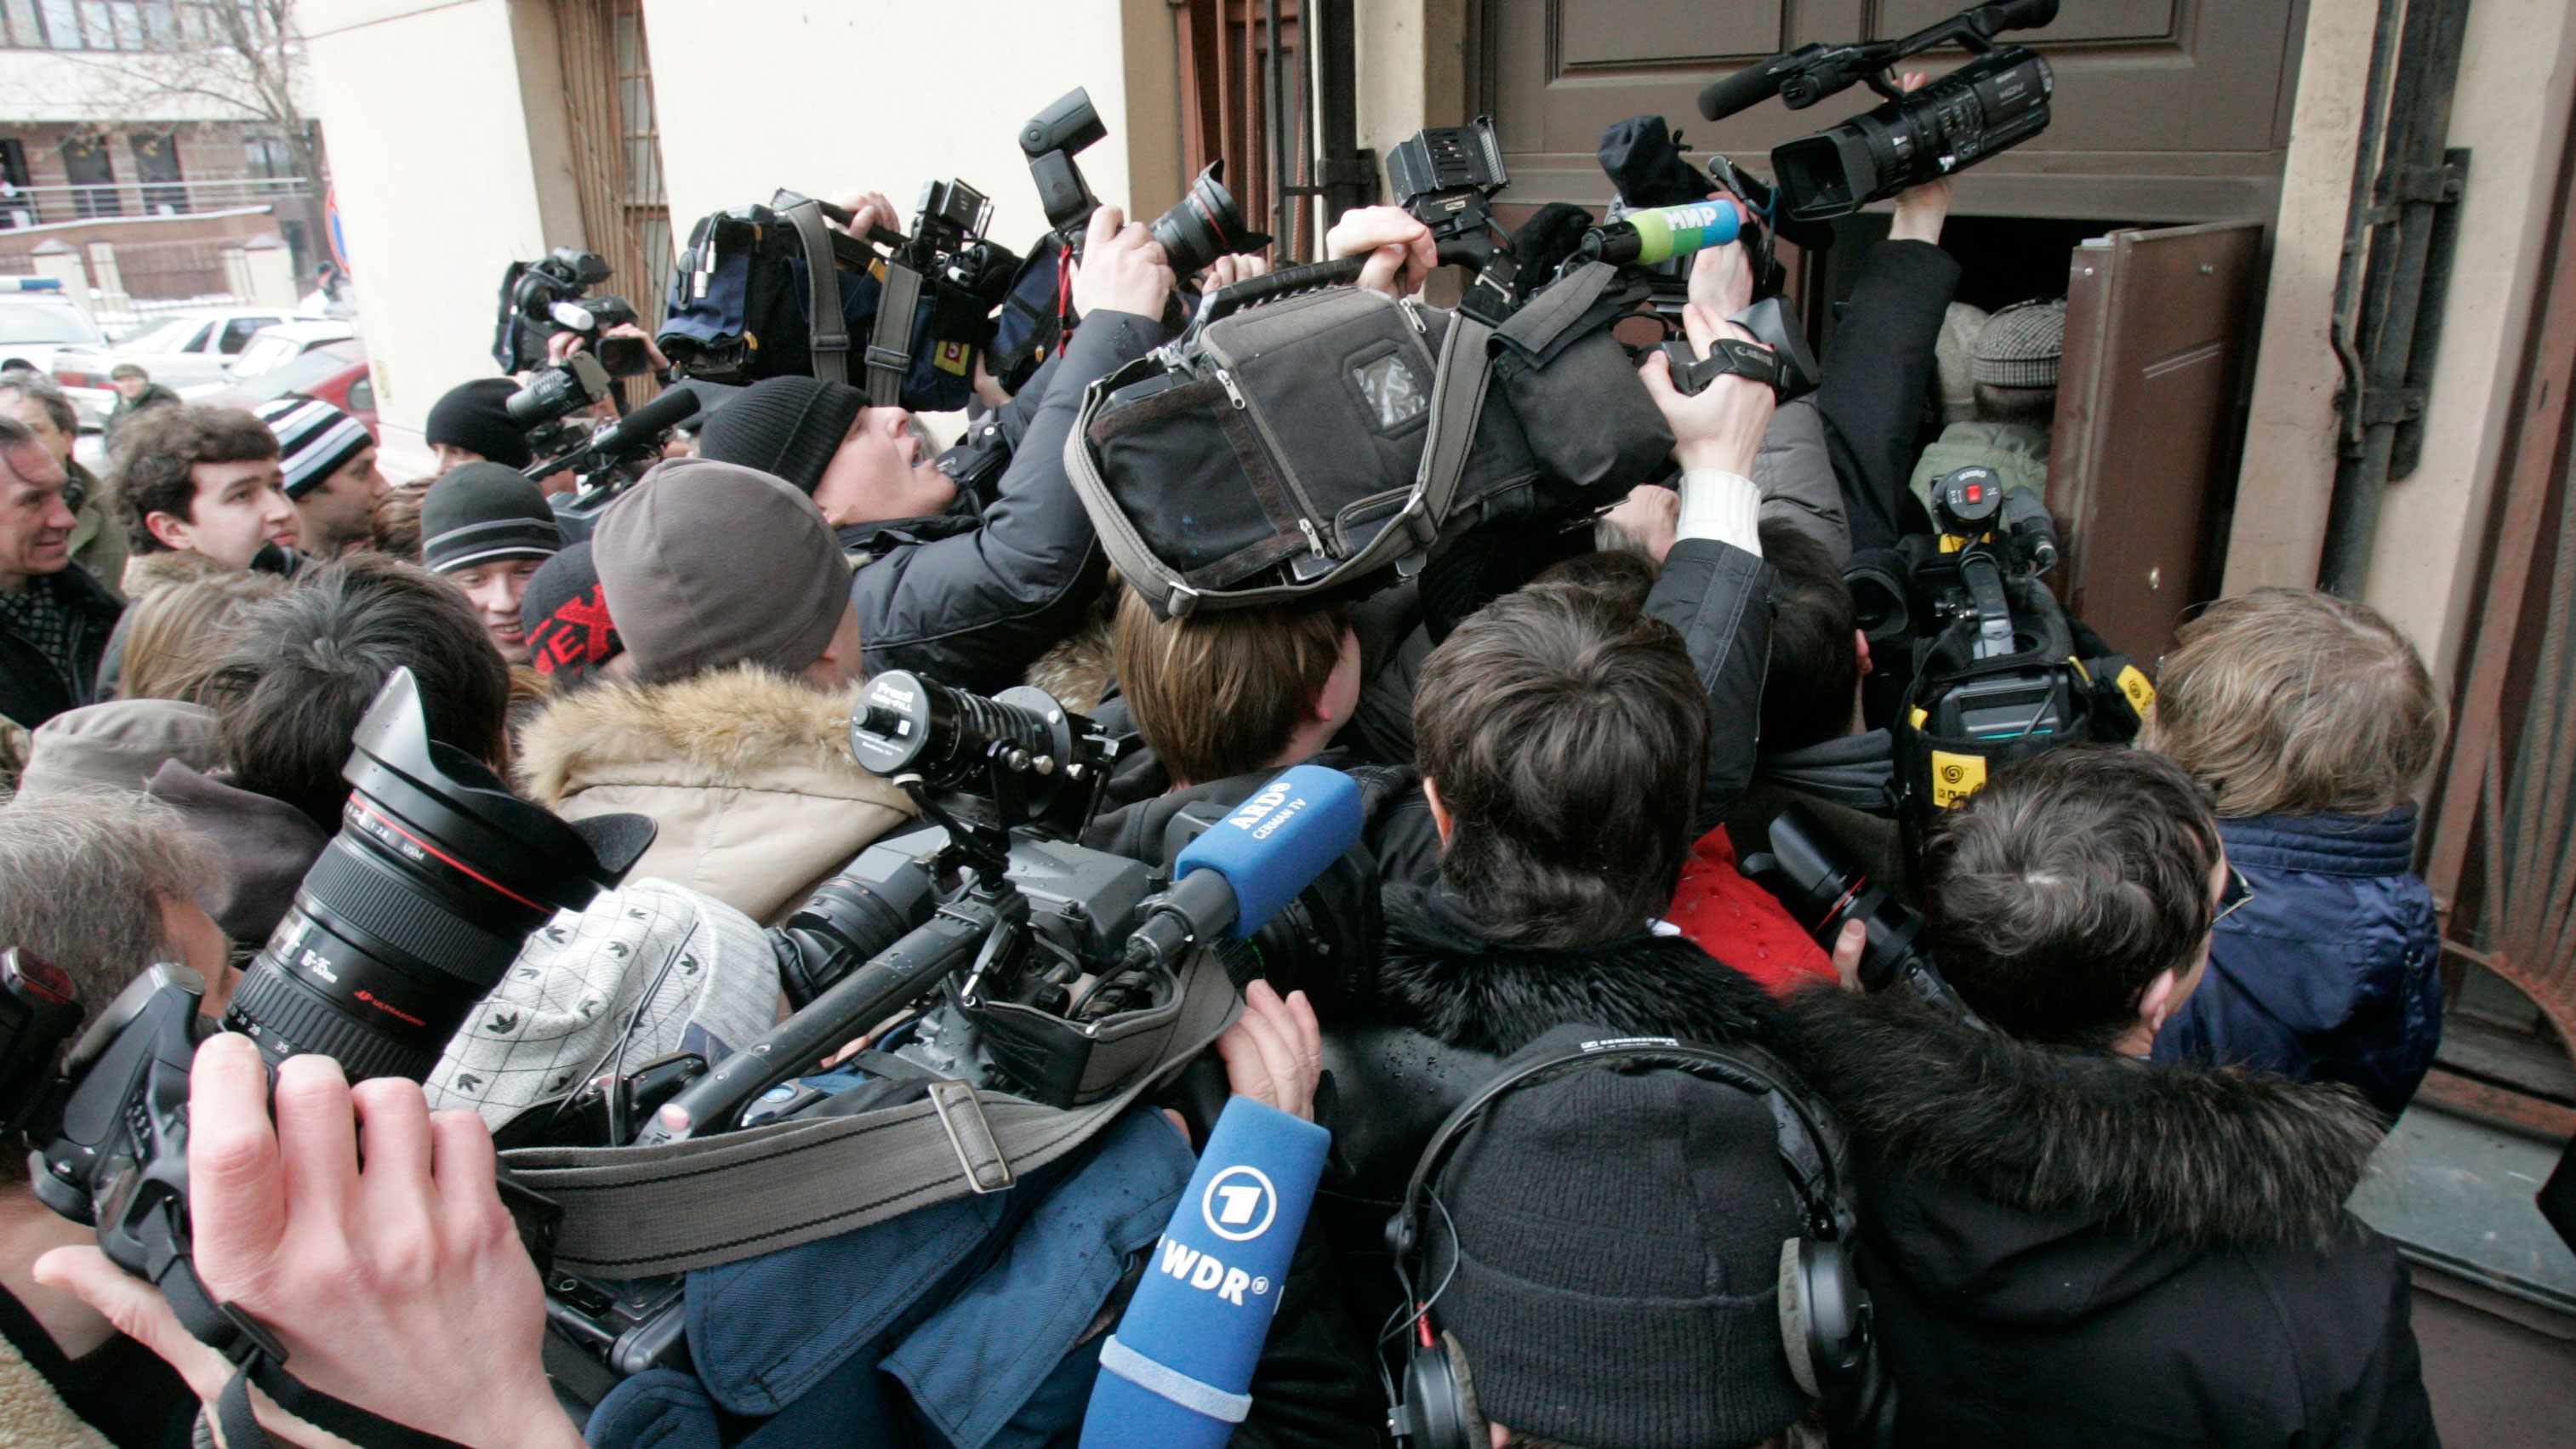 Journalists crowd around the entrance of a Moscow court building after the arrival of former Russian tycoon Mikhail Khodorkovsky March 3, 2009. Jailed Russian oil tycoon Khodorkovsky arrived at a Moscow court on Tuesday at the start of a new trial for money laundering and embezzlement, a Reuters reporter at the courtroom said. REUTERS/Alexander Natruskin (RUSSIA)